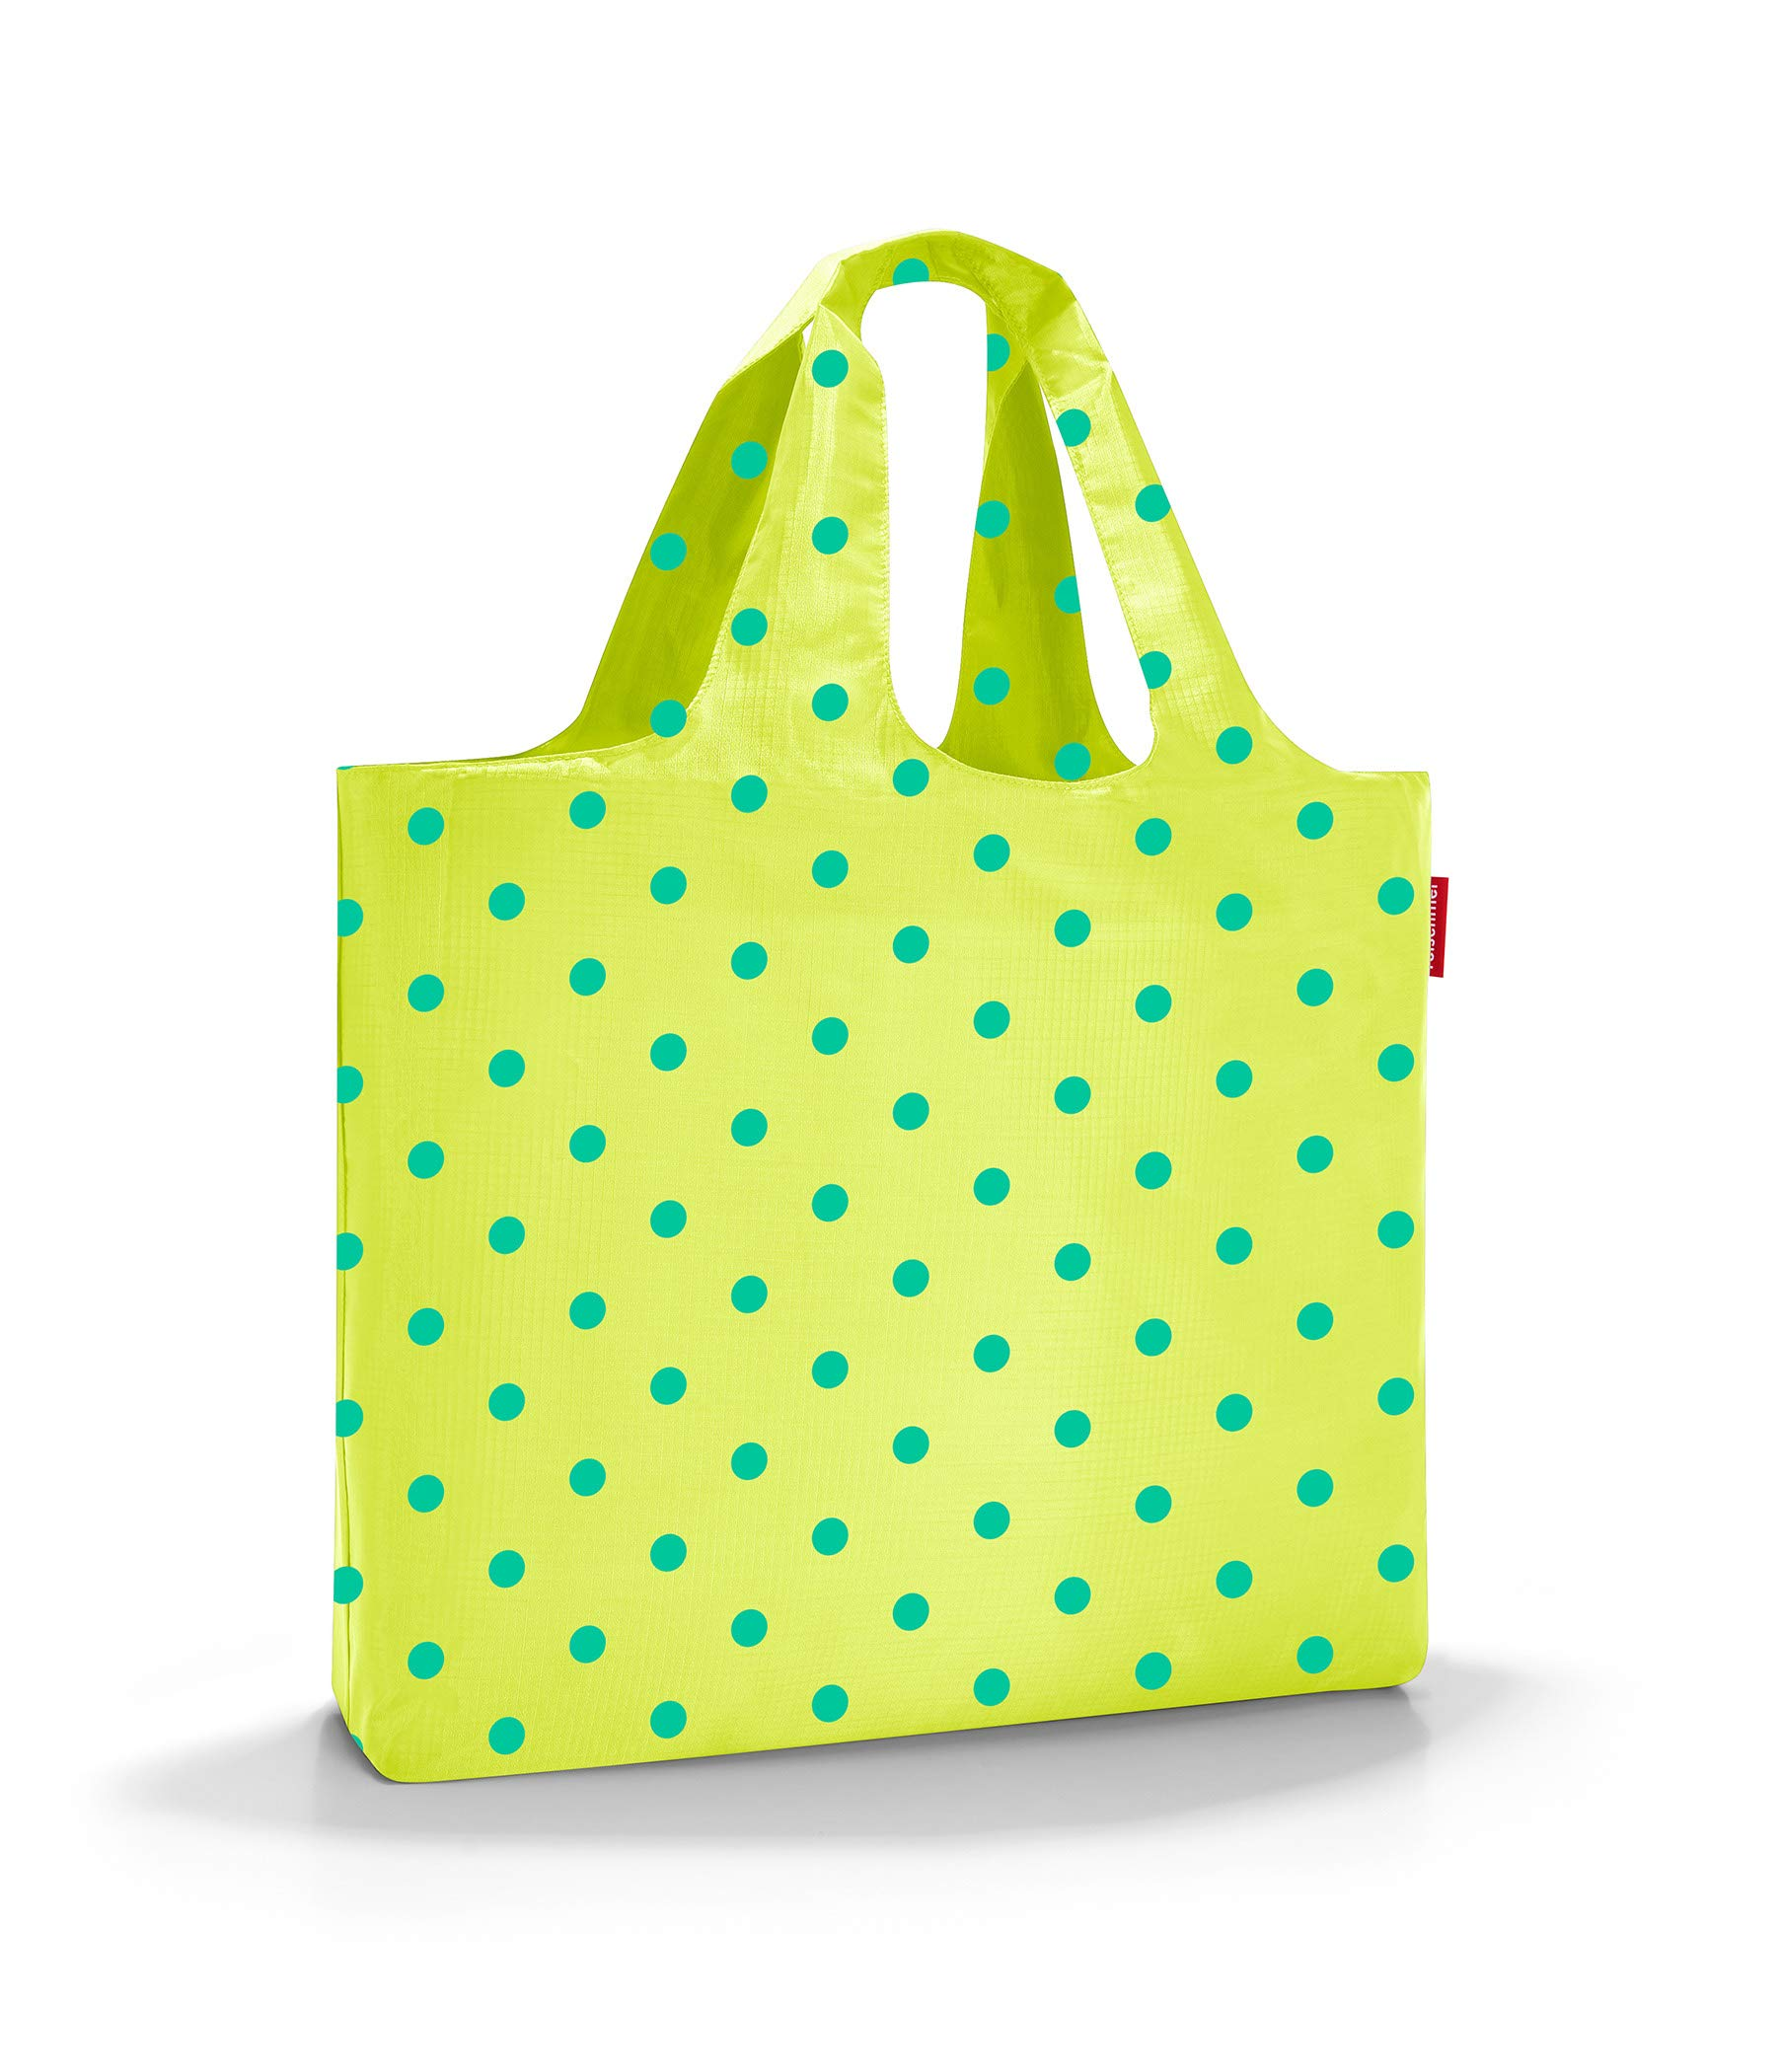 reisenthel Mini Maxi Beachbag, Foldable and Spacious Lightweight Tote Bag with Zippered Pouch, Water-repellent, Lemon Dots